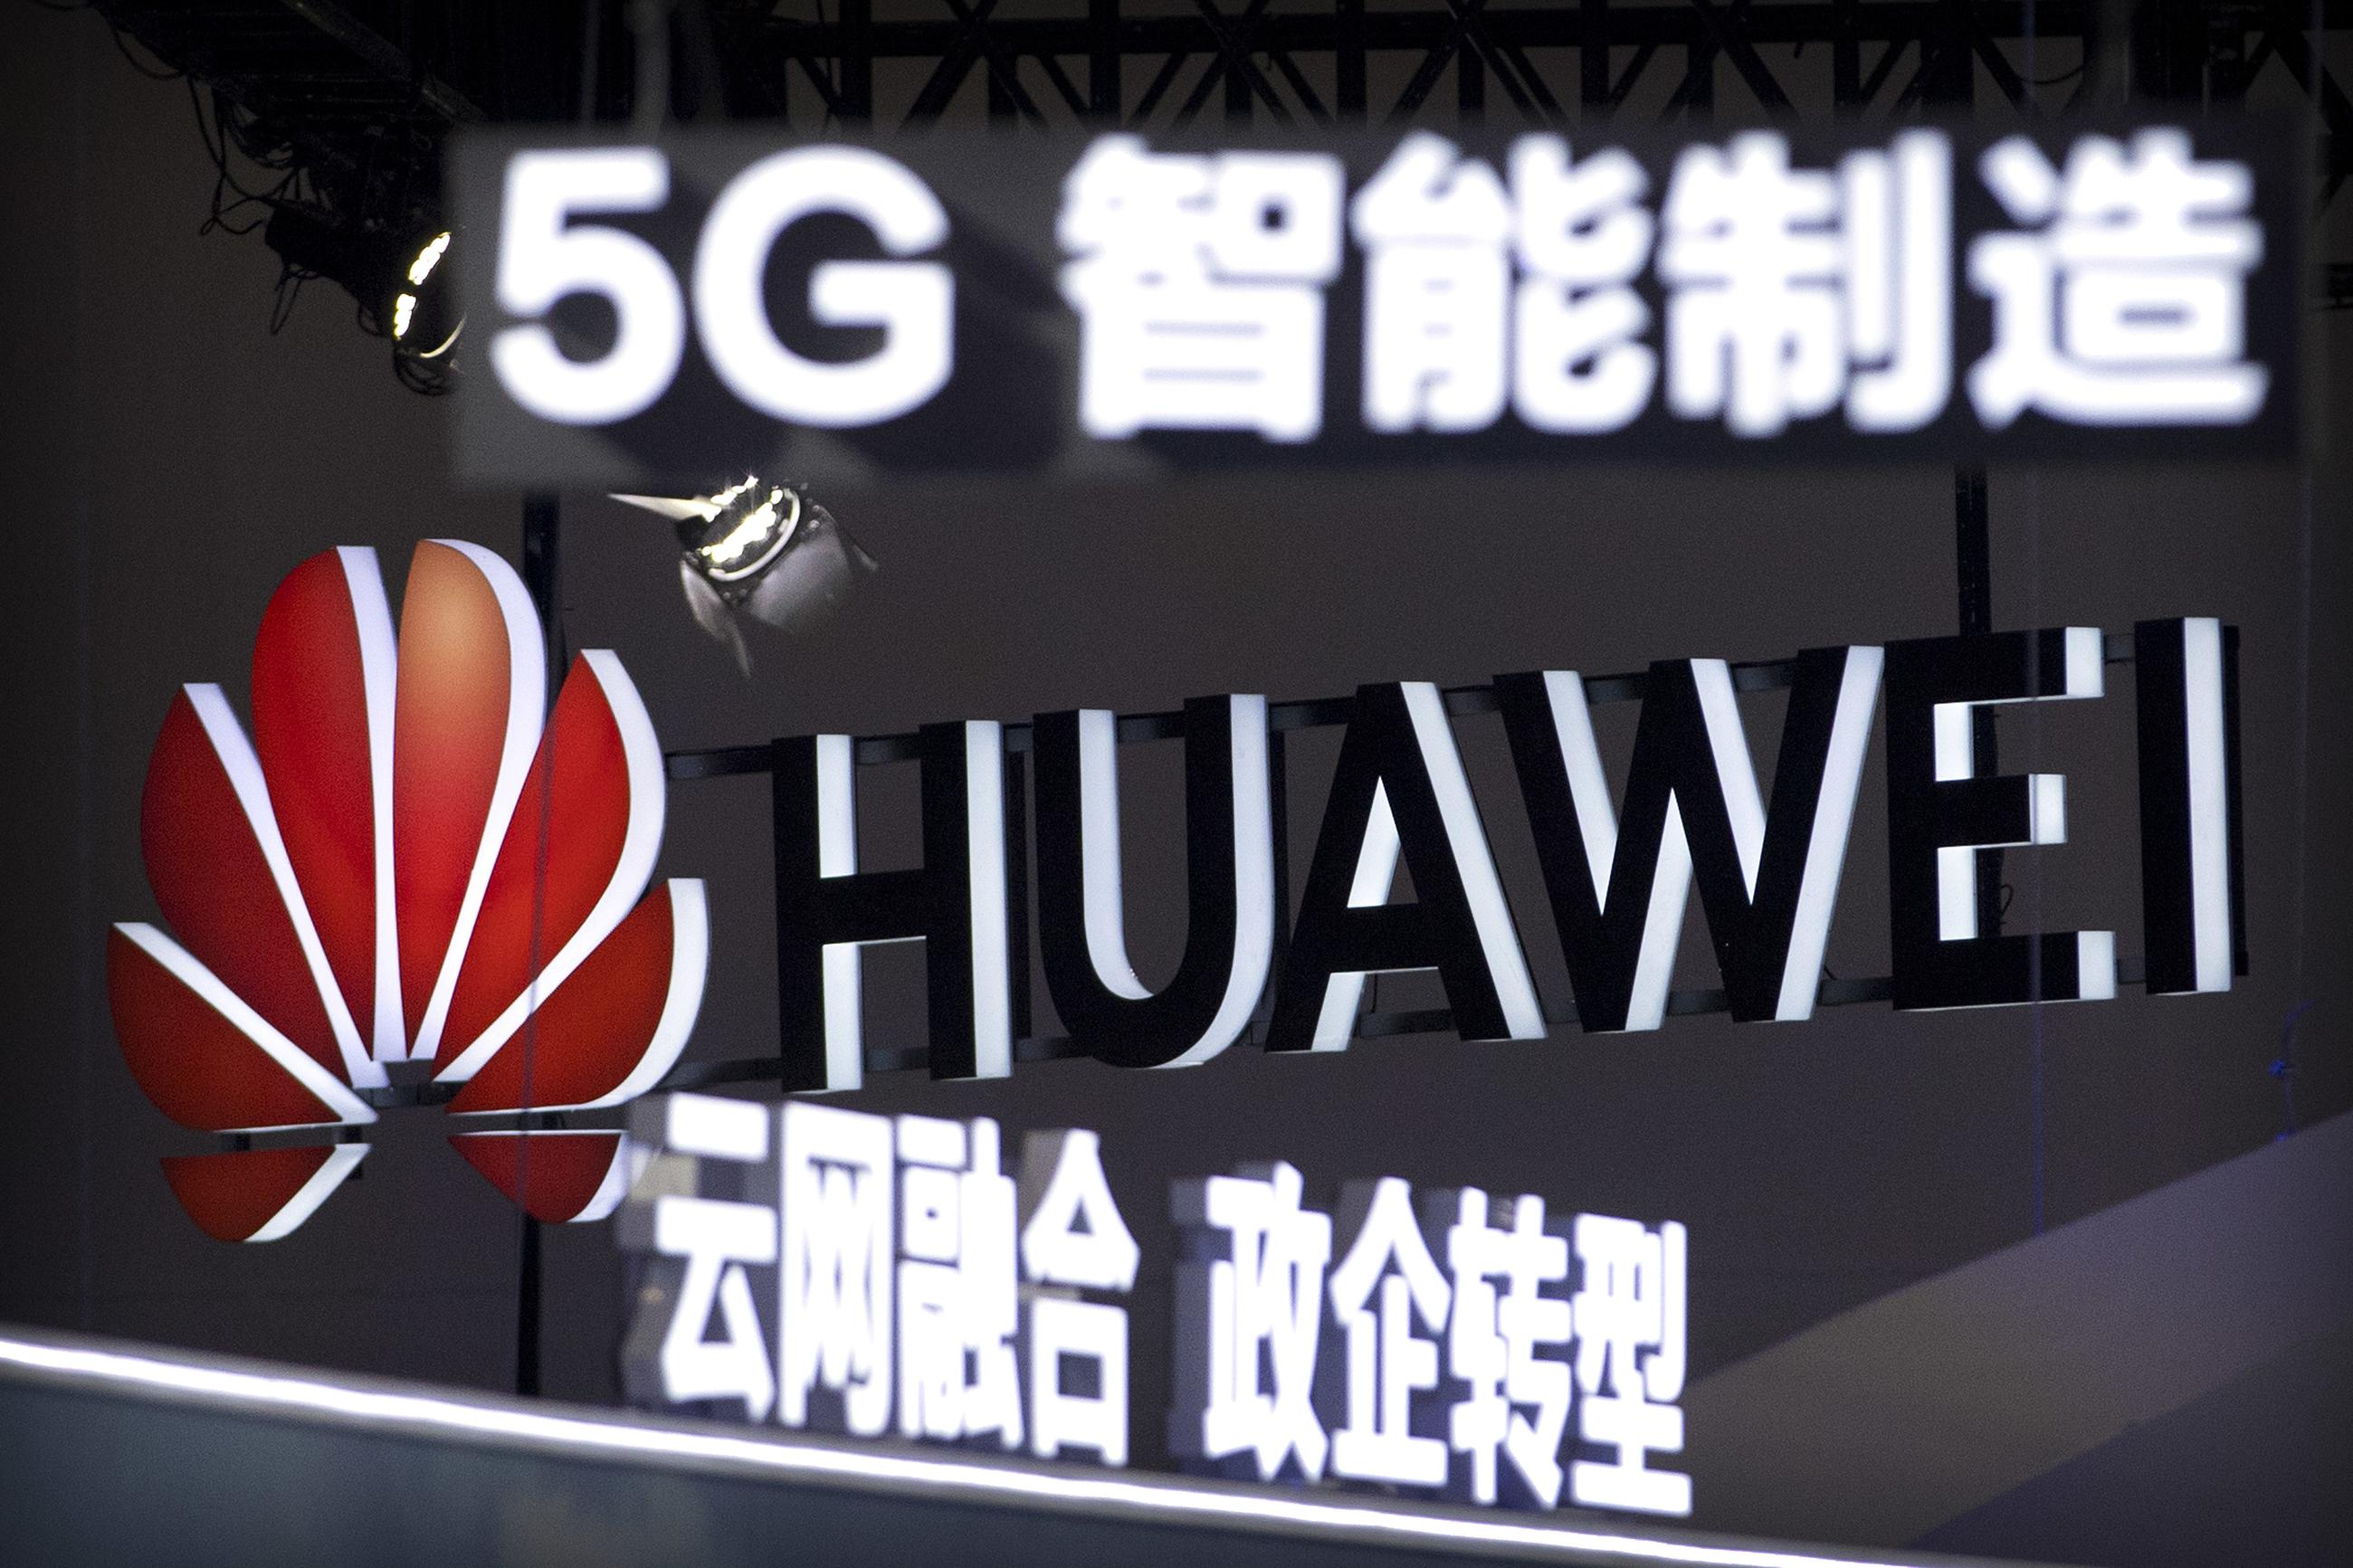 Unraveling U S -China Ties May Slow 5G Deployment